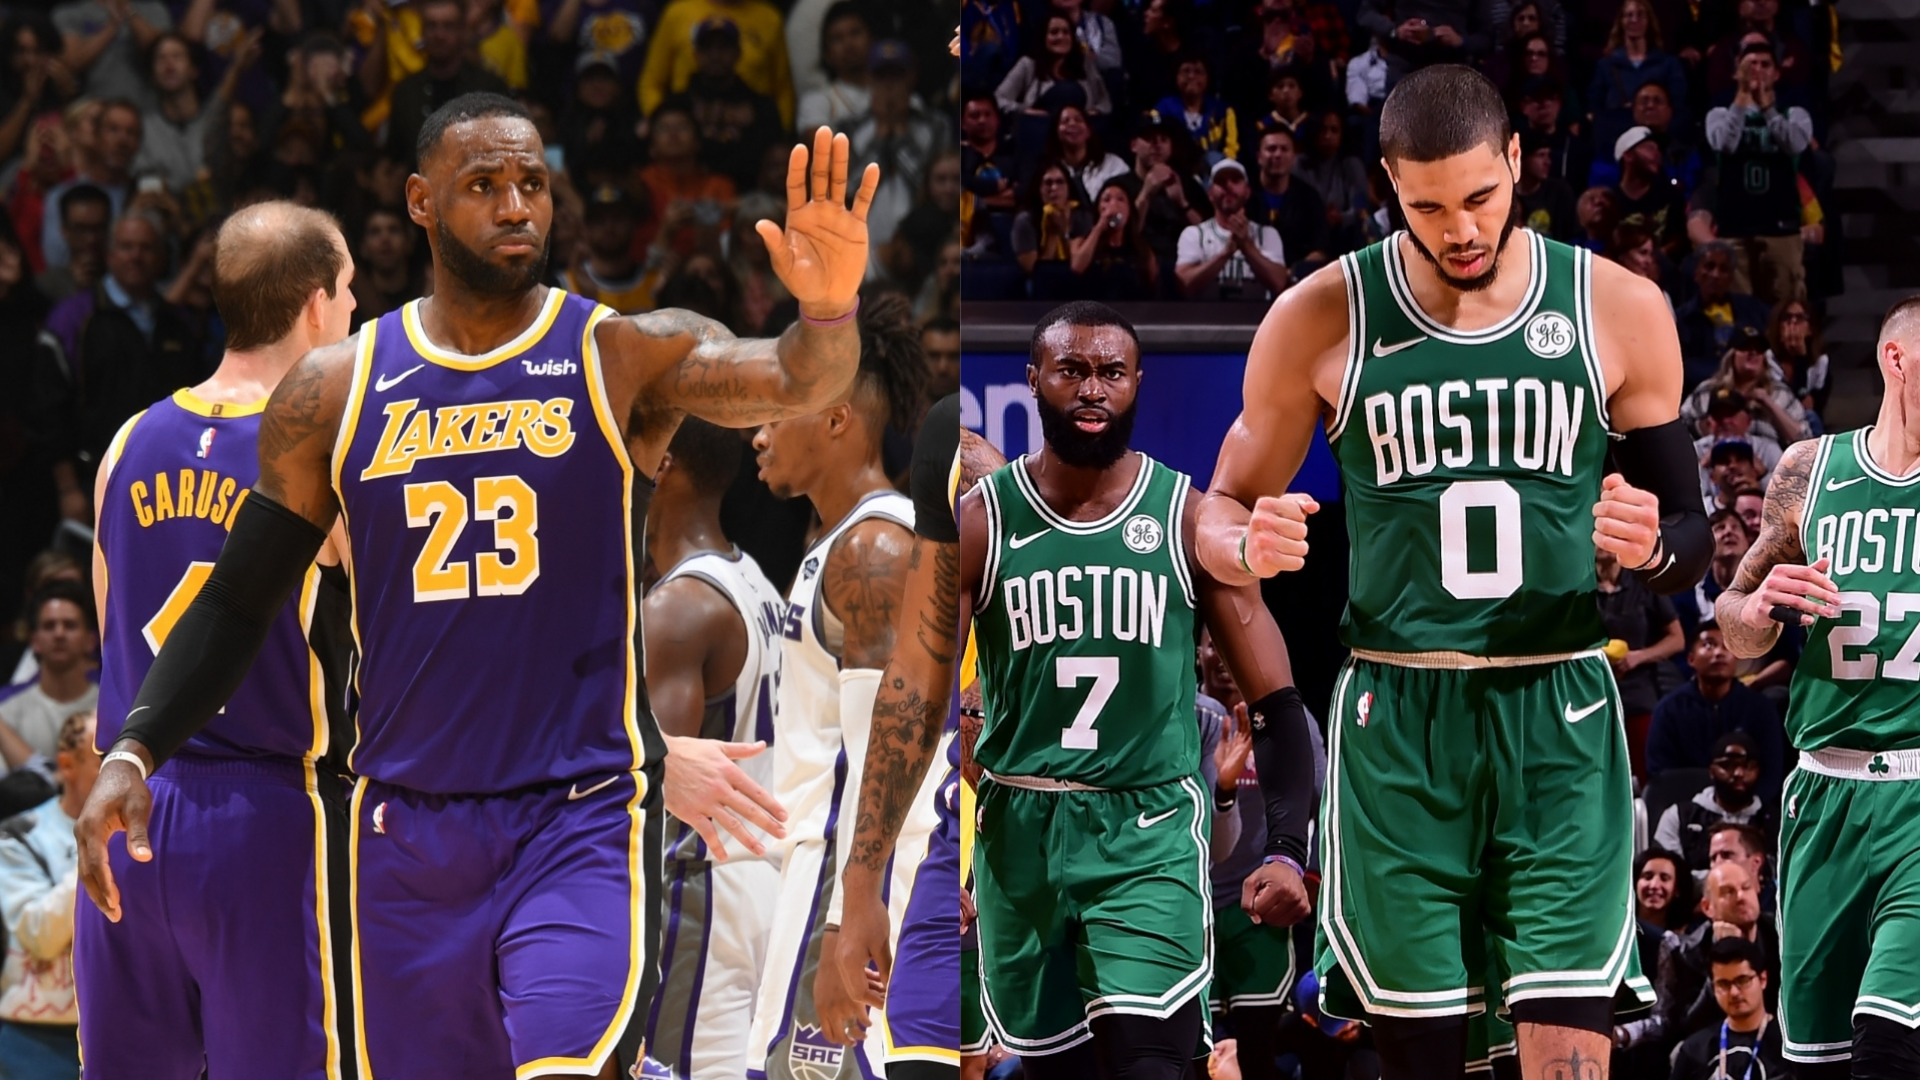 Behind clutch plays, Los Angeles Lakers edge the Sacramento Kings, while Boston Celtics win their 10th-straight game